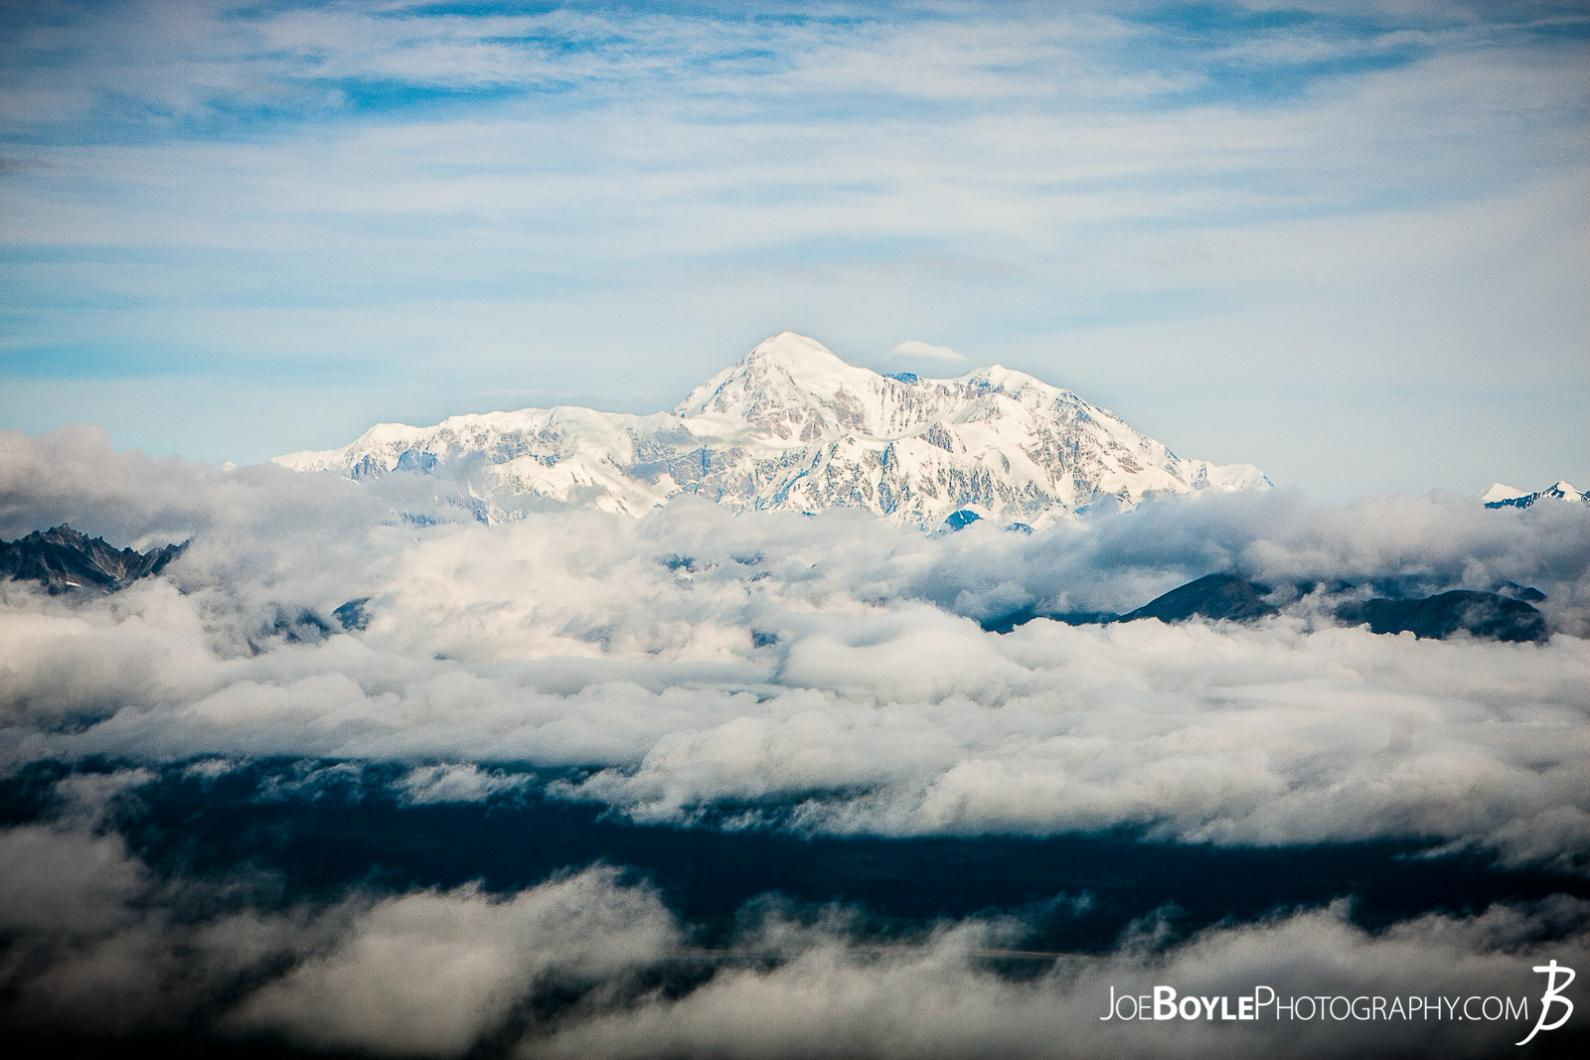 mount-denali-mckinley-with-clouds-from-kesugi-ridge-trail